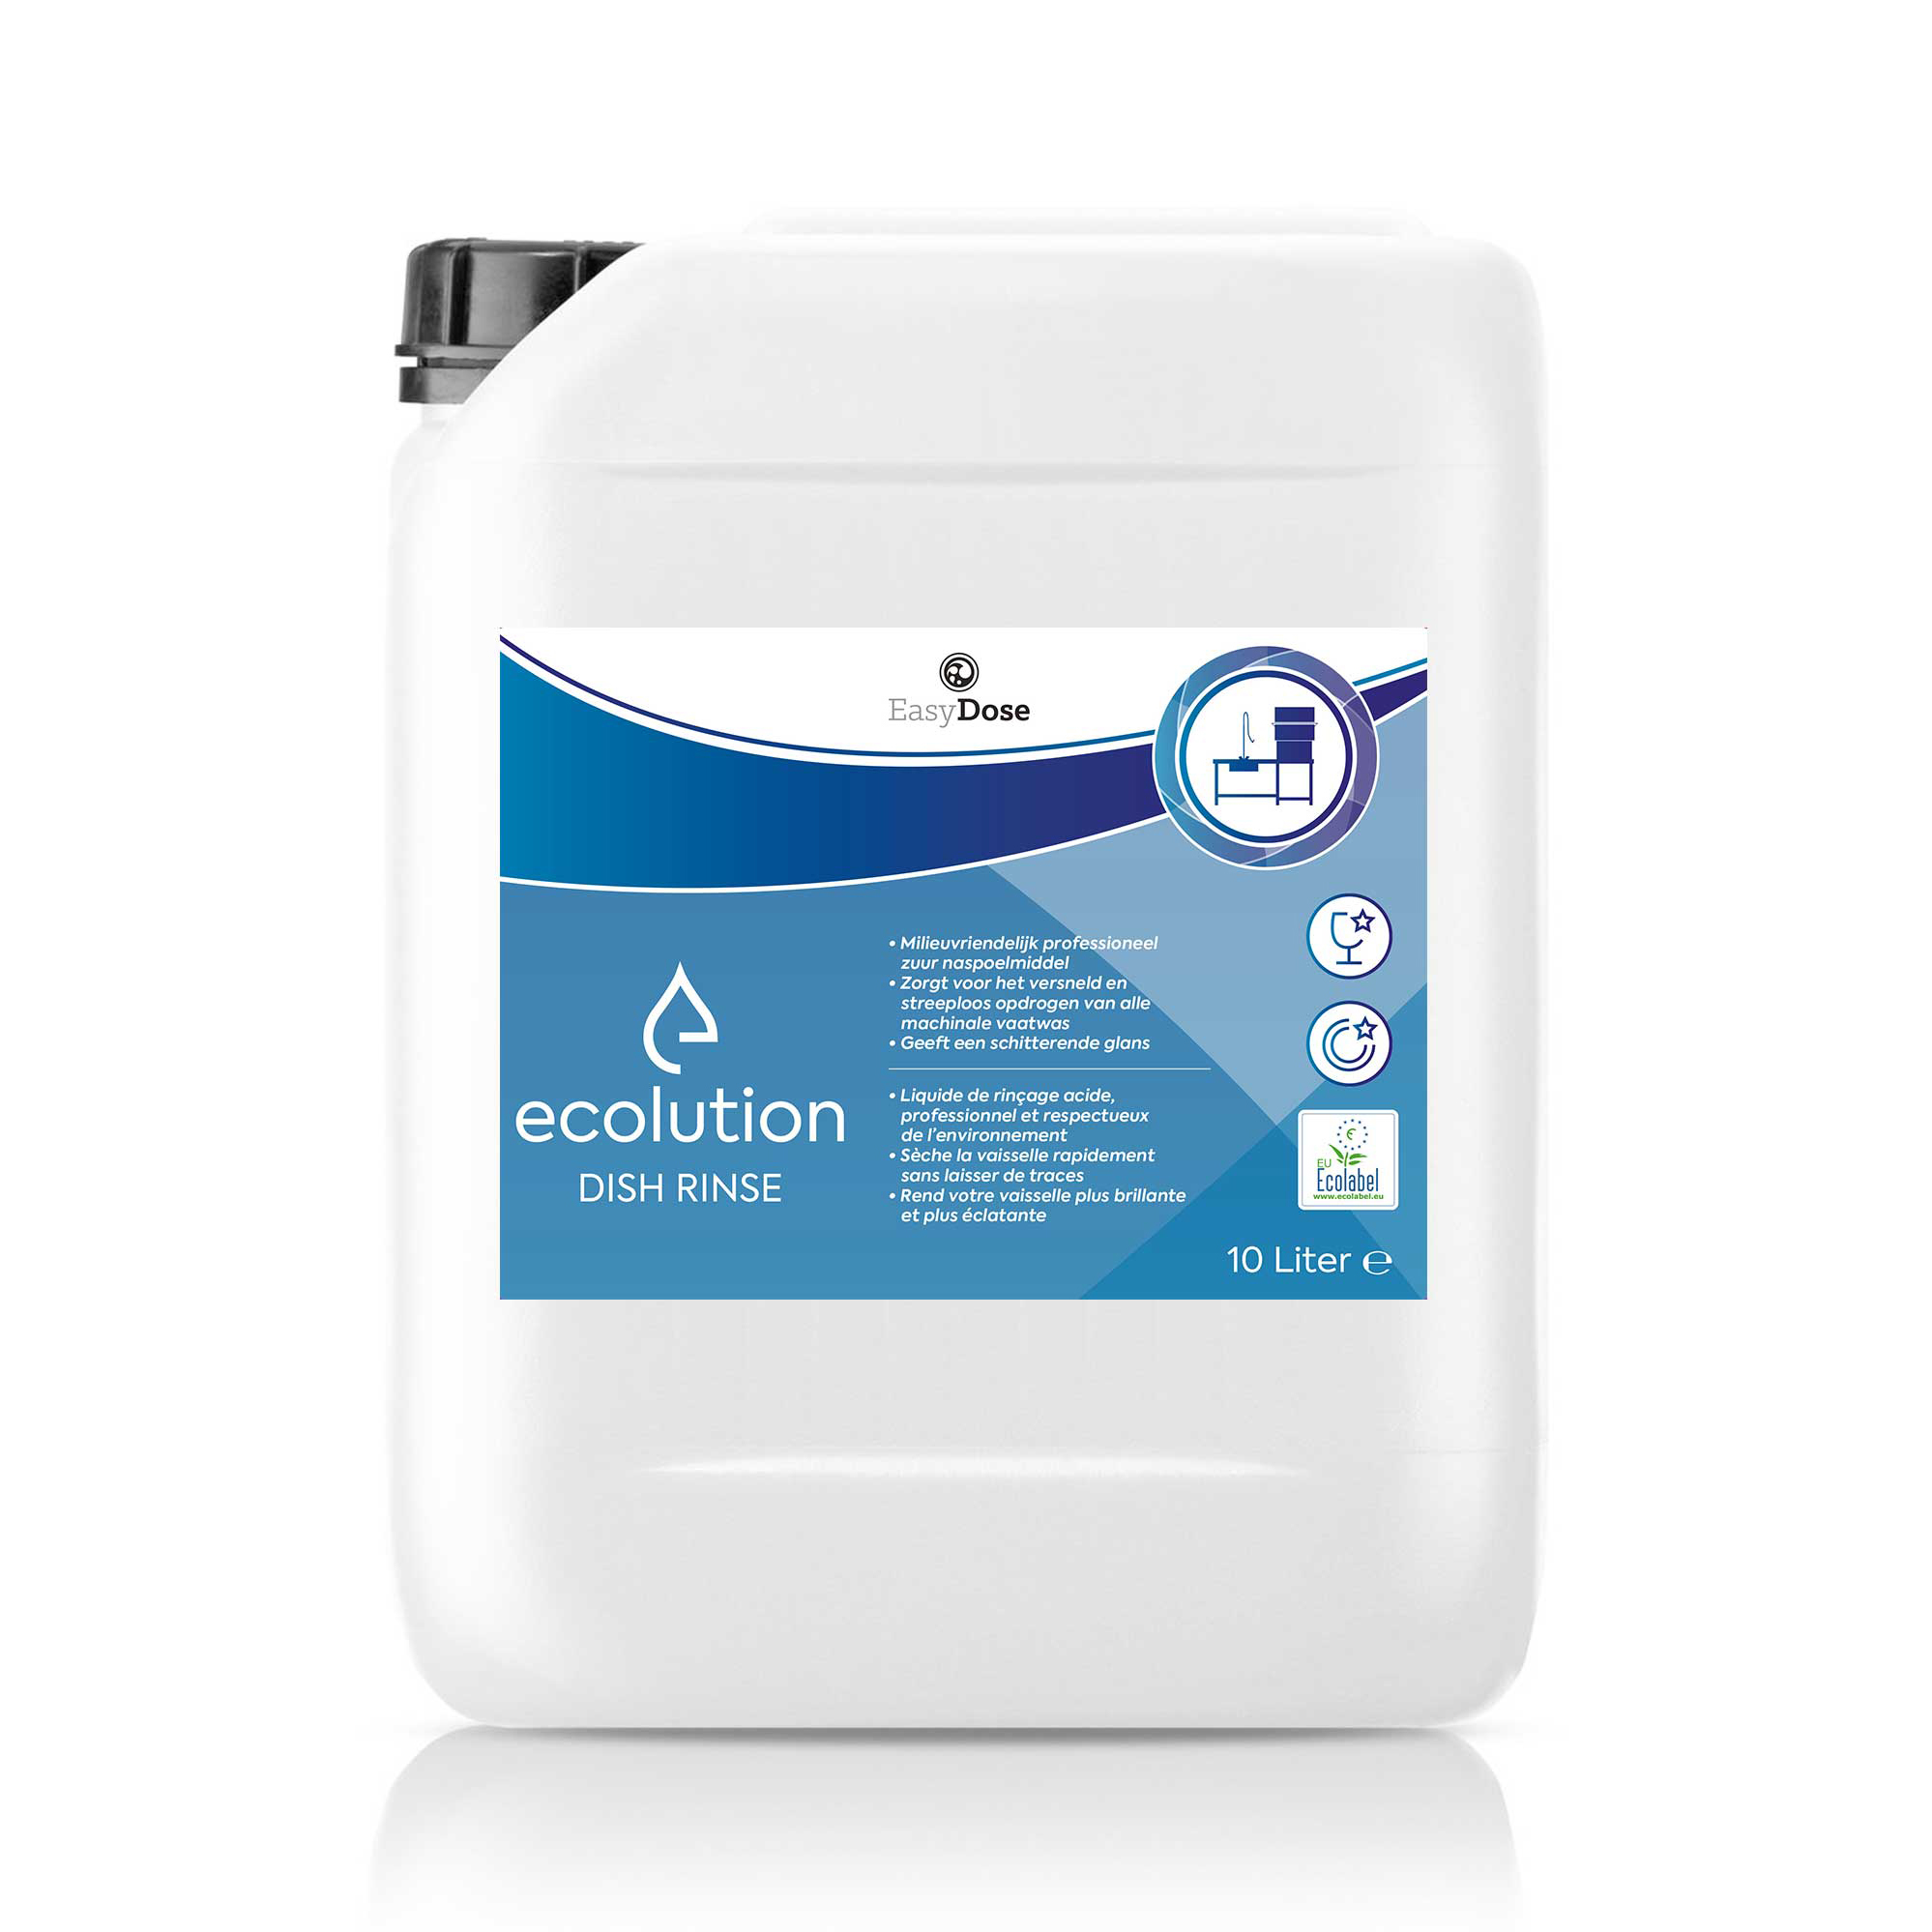 1035155_02 Ecolution Dish Rinse ecolabel JERRYCAN 10L (60)